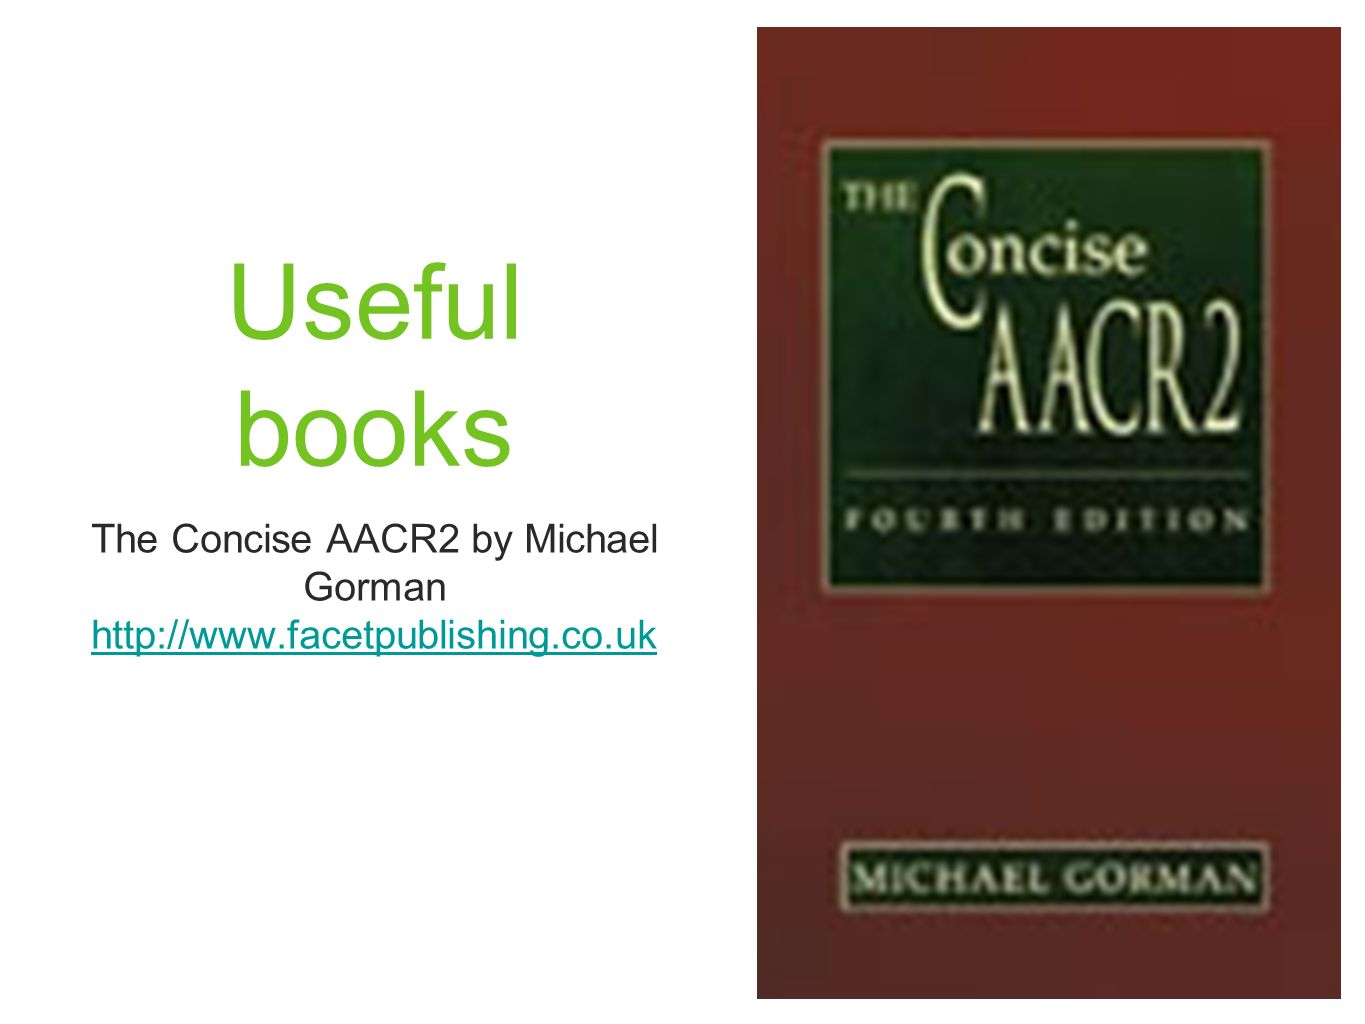 Useful books The Concise AACR2 by Michael Gorman http://www.facetpublishing.co.uk